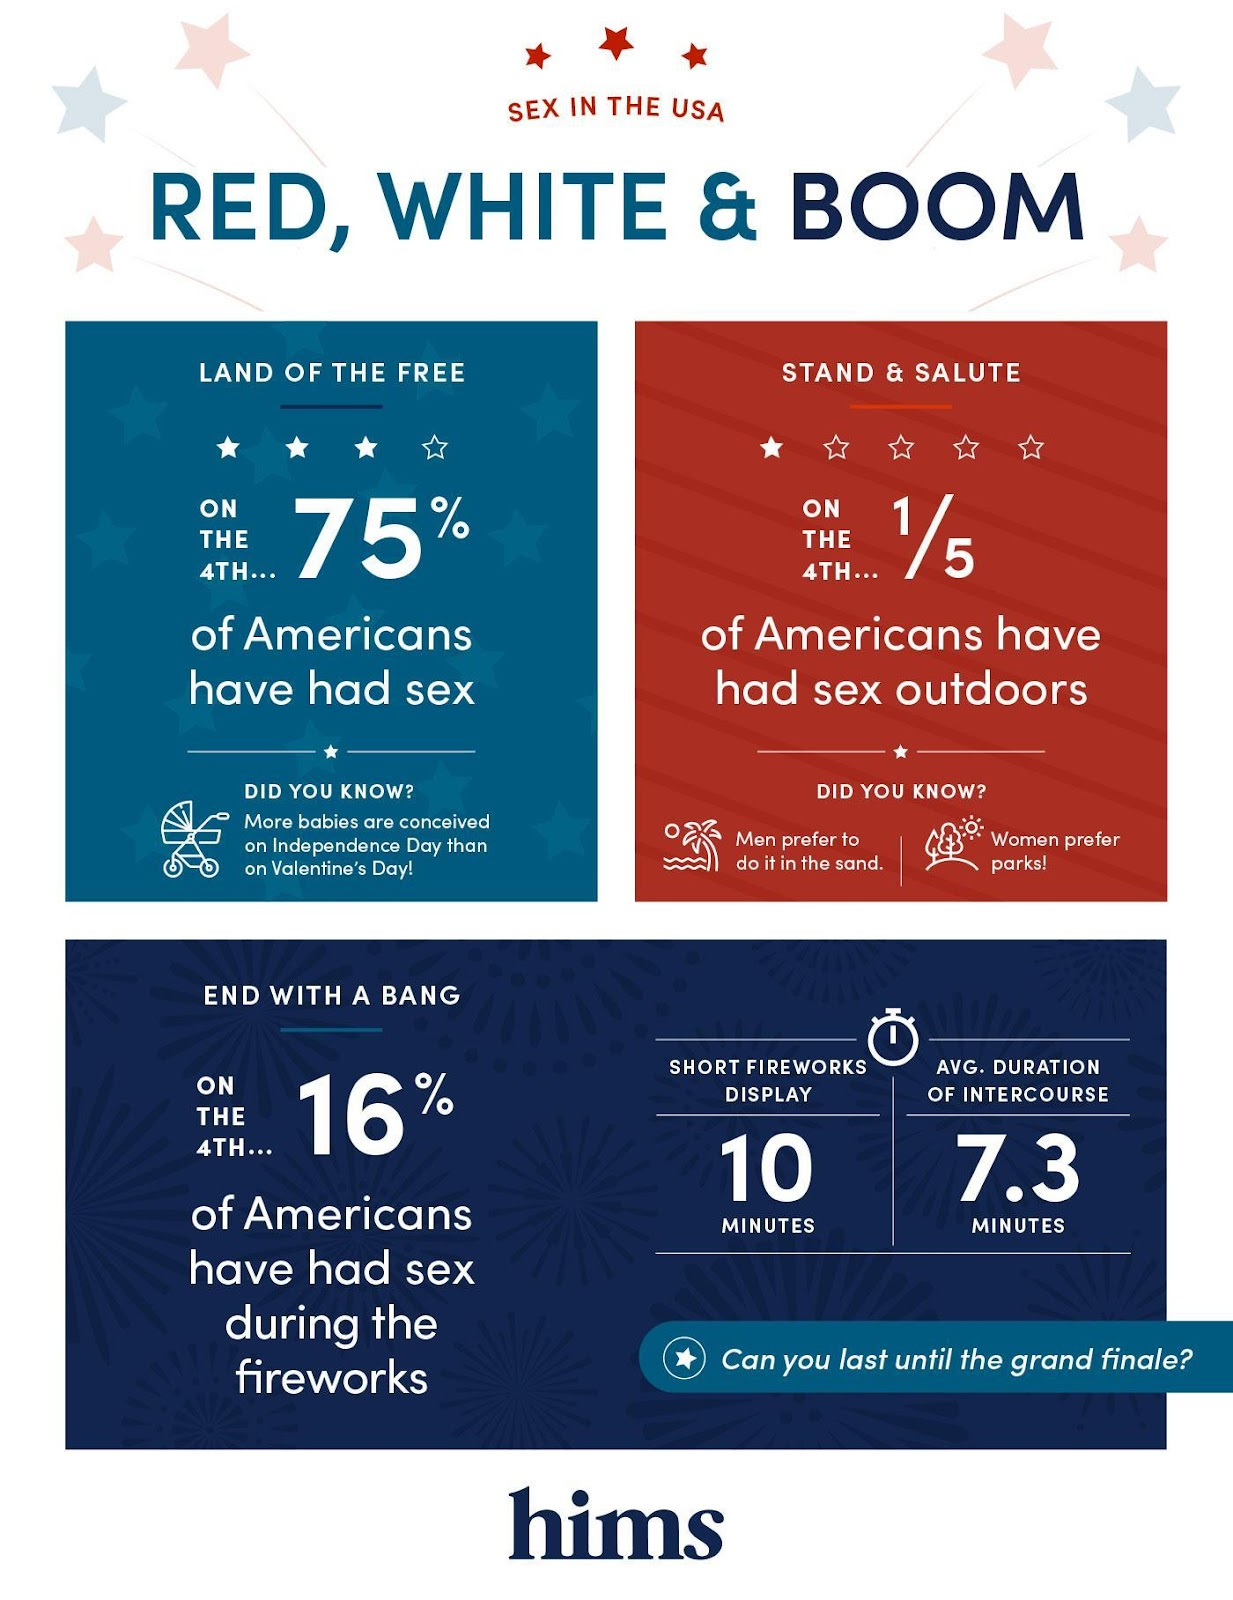 sex and fireworks statistics